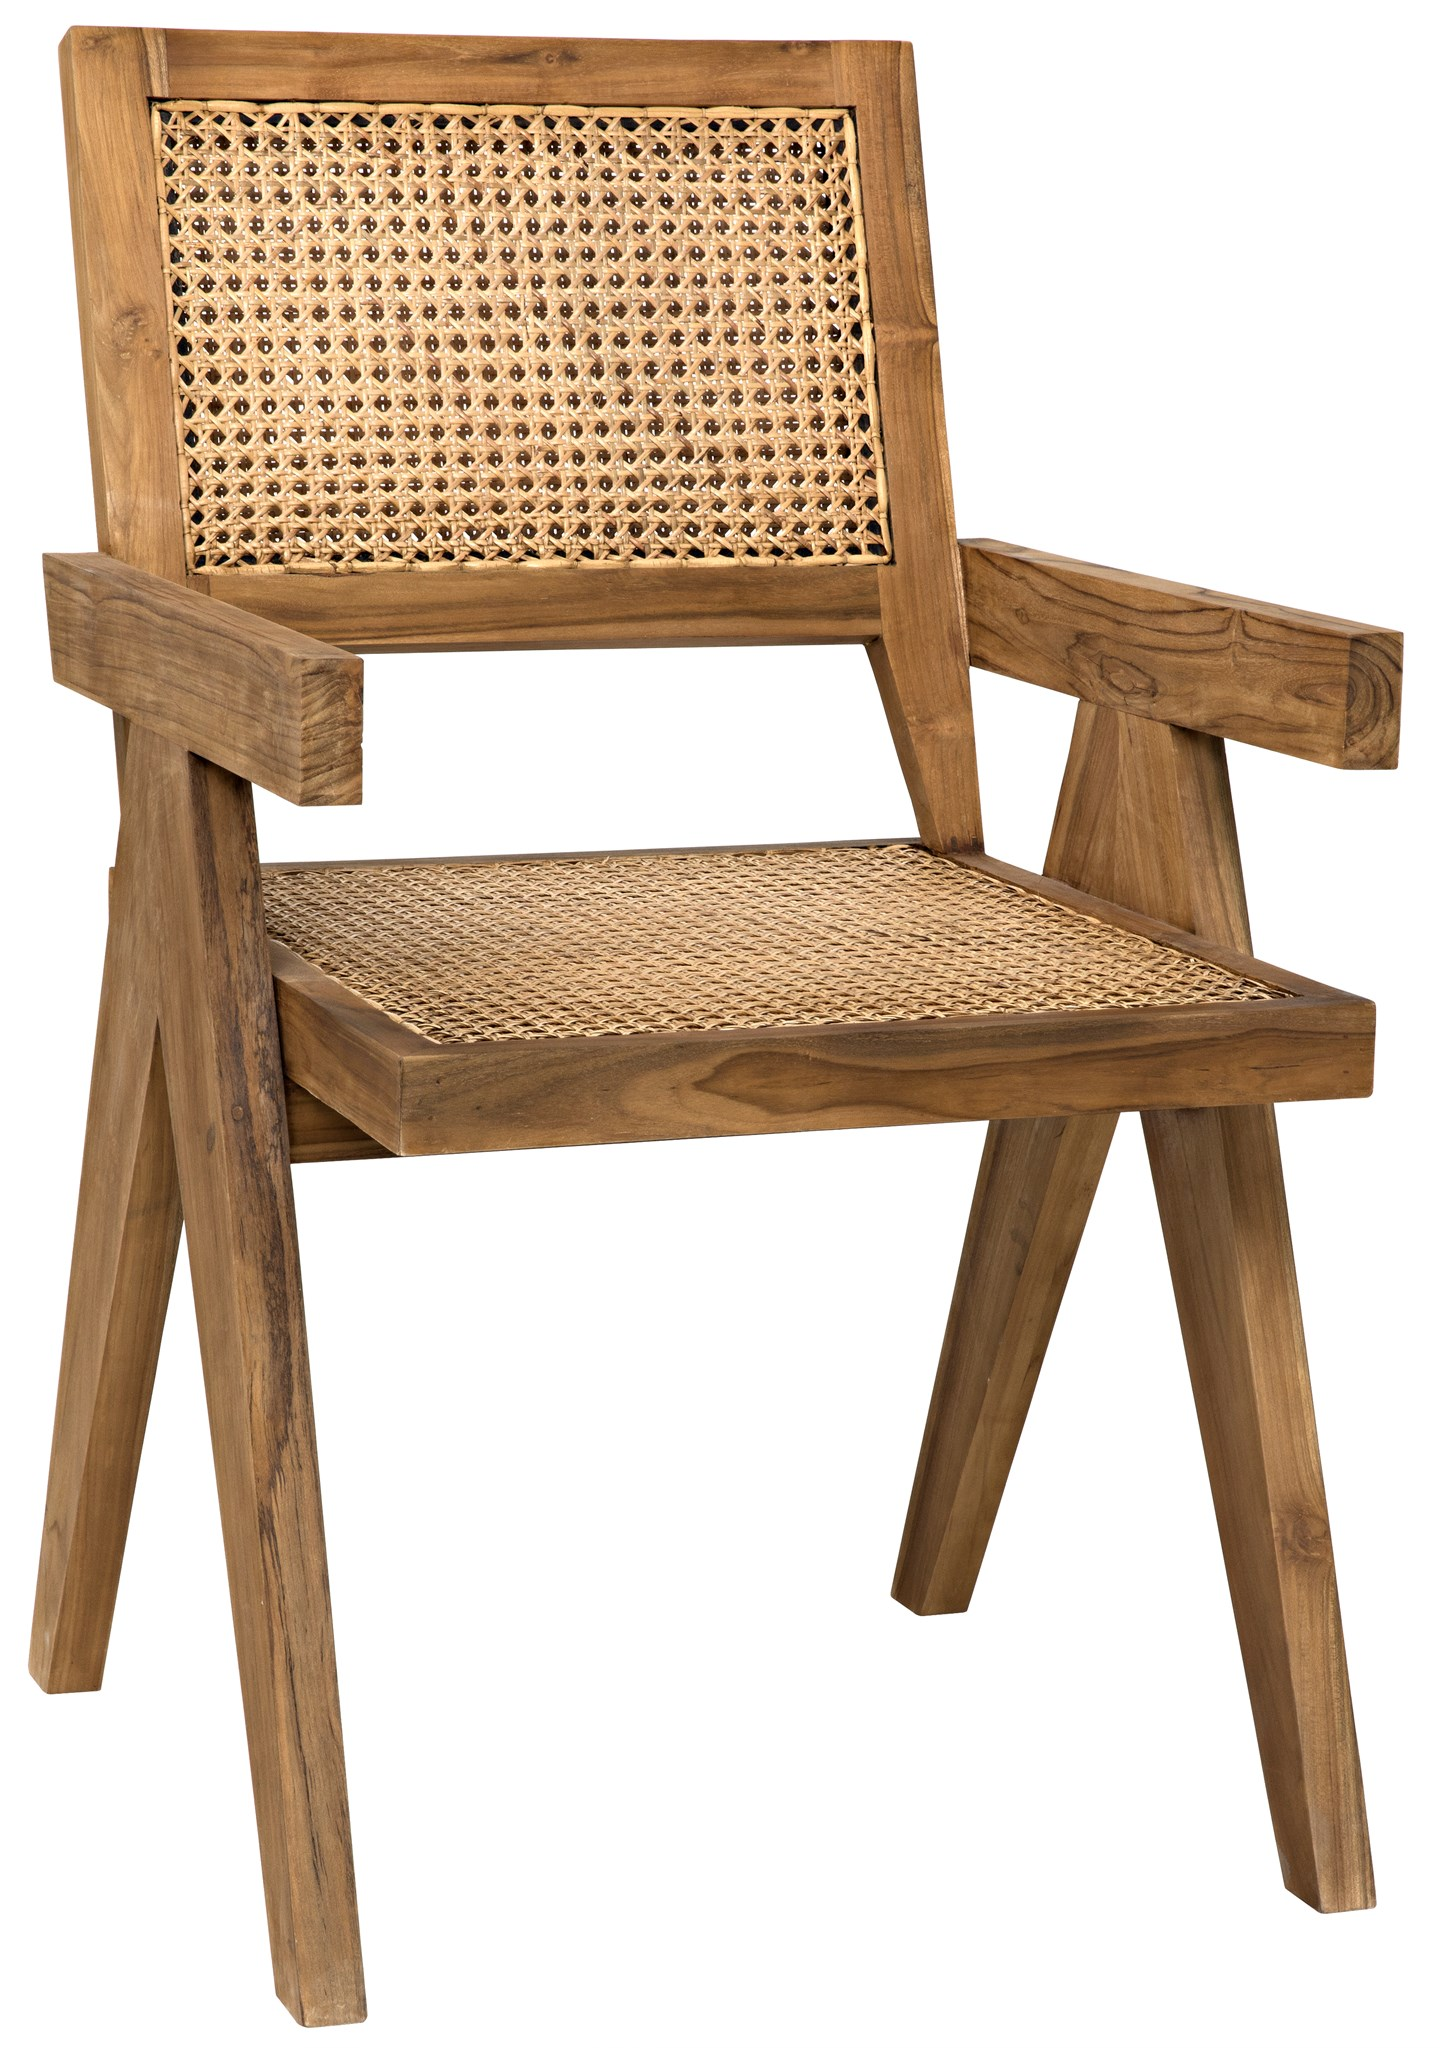 Miraculous Jake Teak And Cane Arm Chair Mecox Gardens Andrewgaddart Wooden Chair Designs For Living Room Andrewgaddartcom